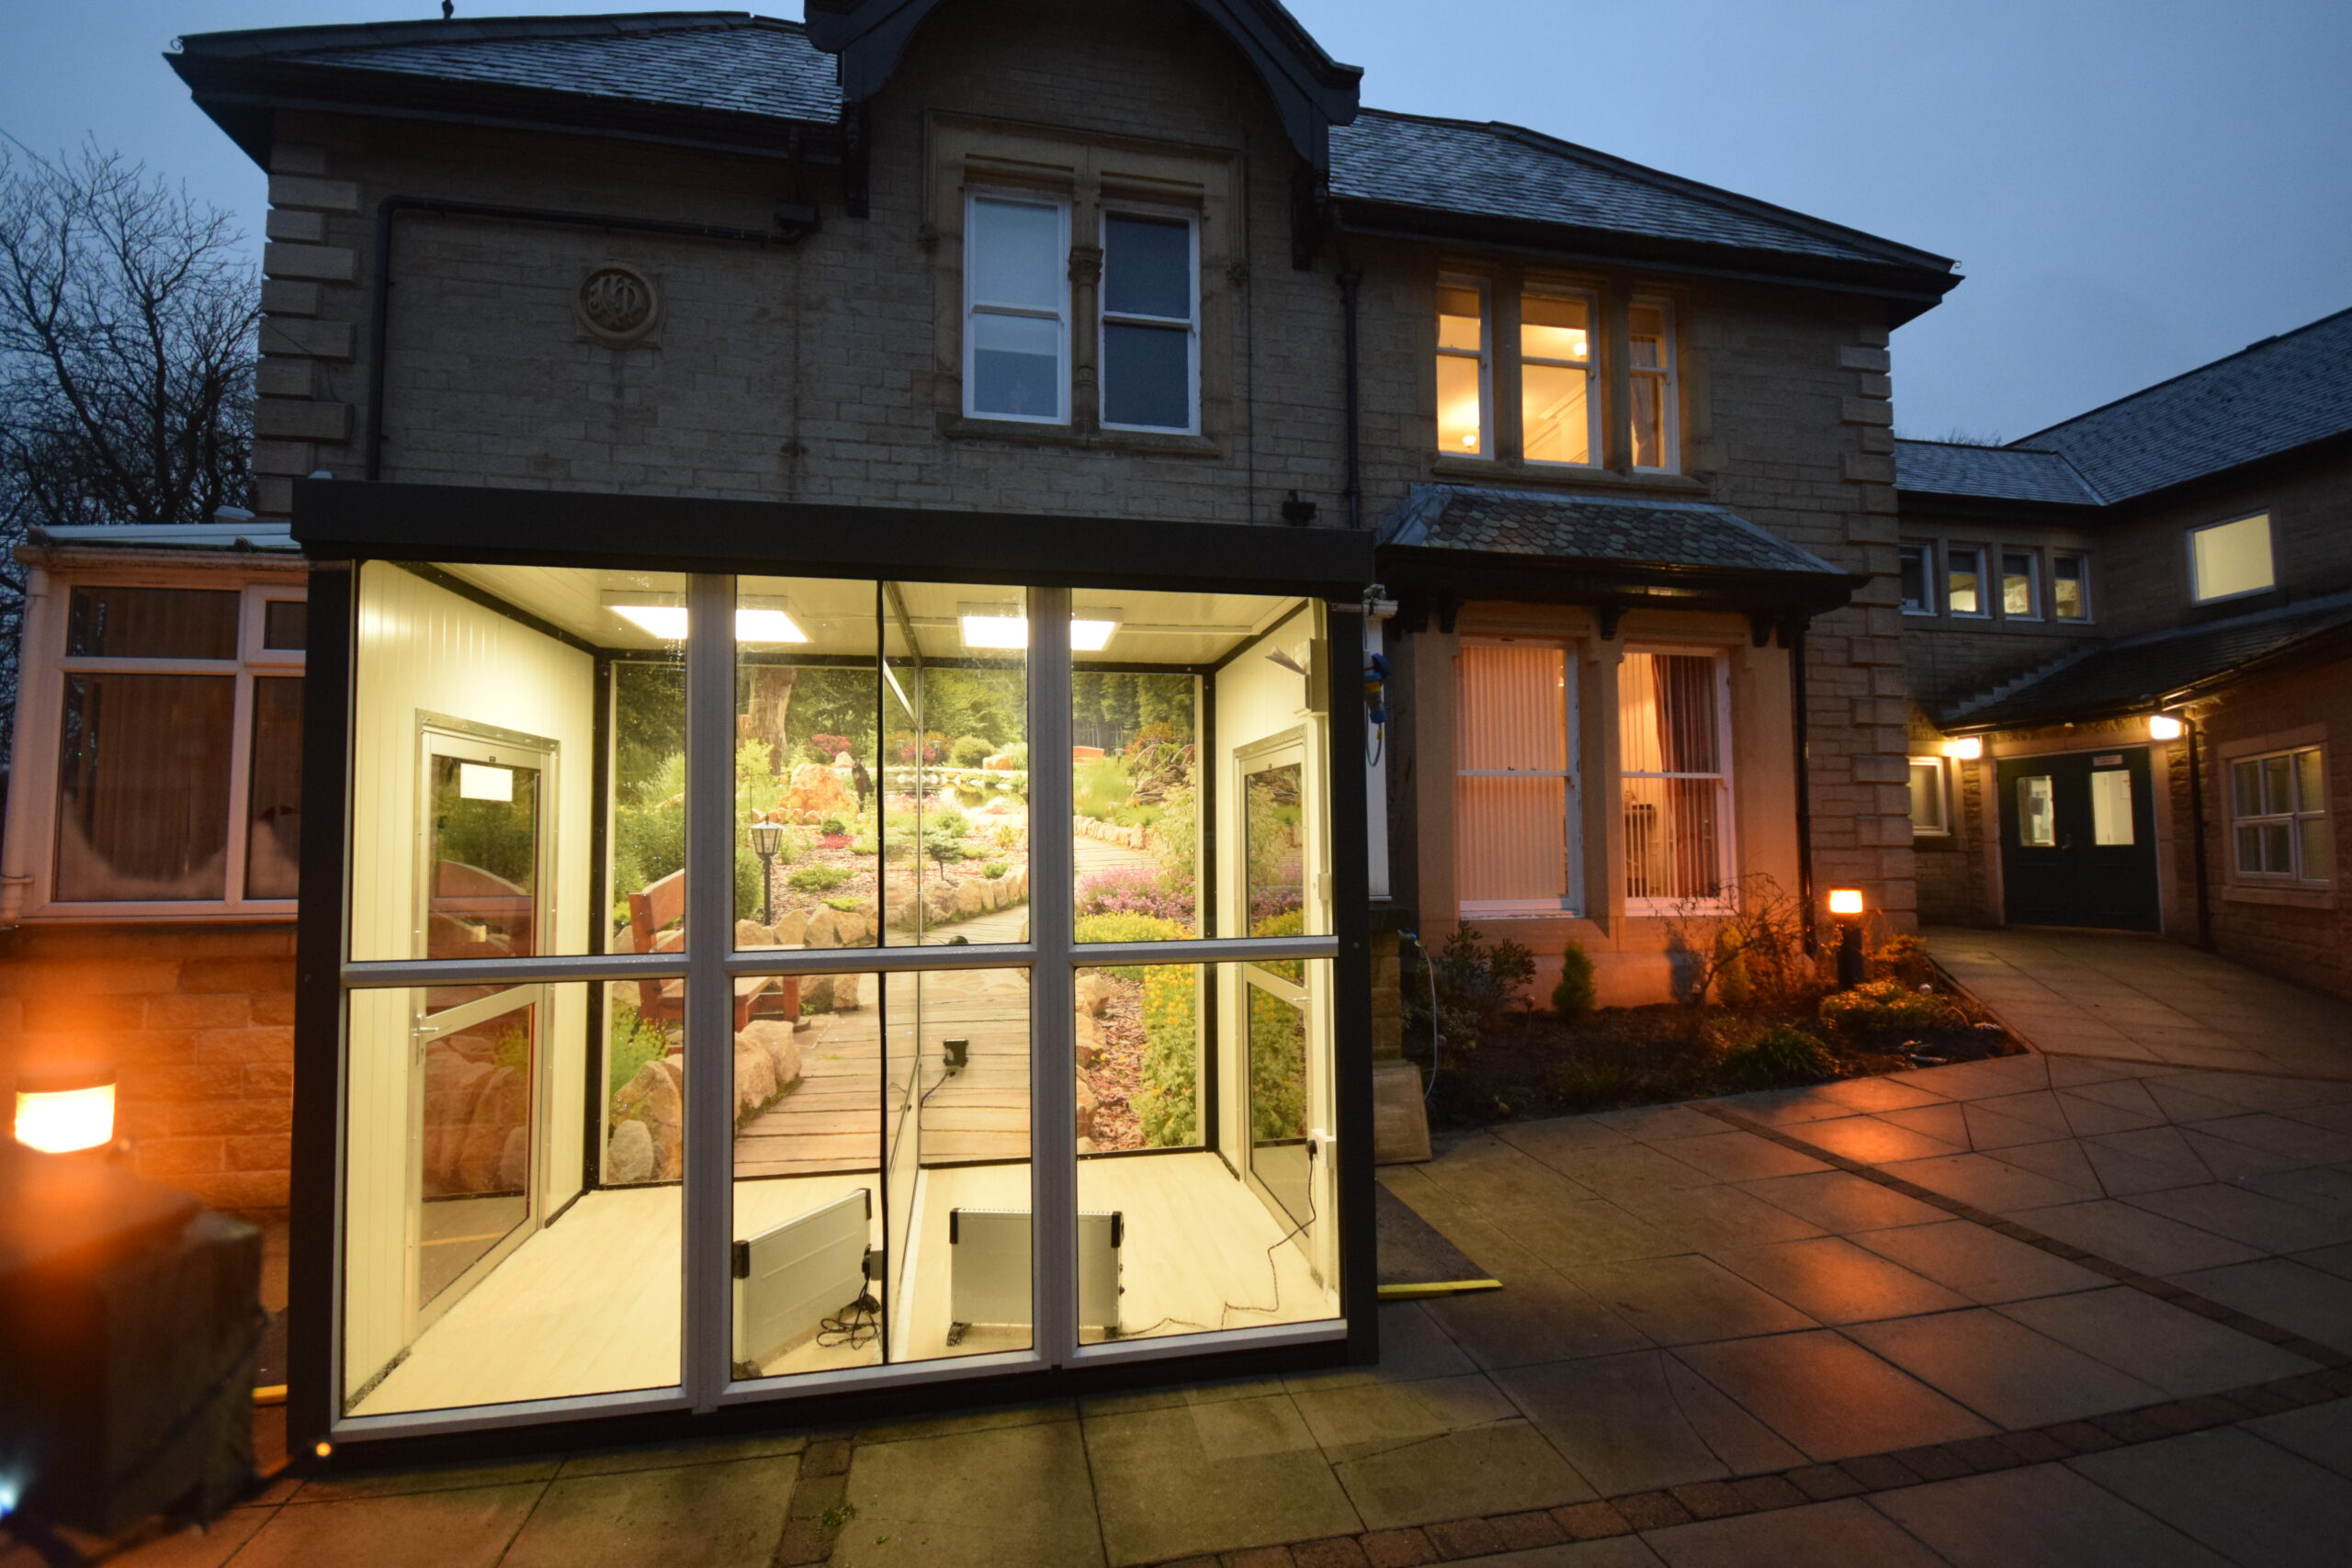 DSC 0073 scaled - Autumn brings rise in orders for care home pods